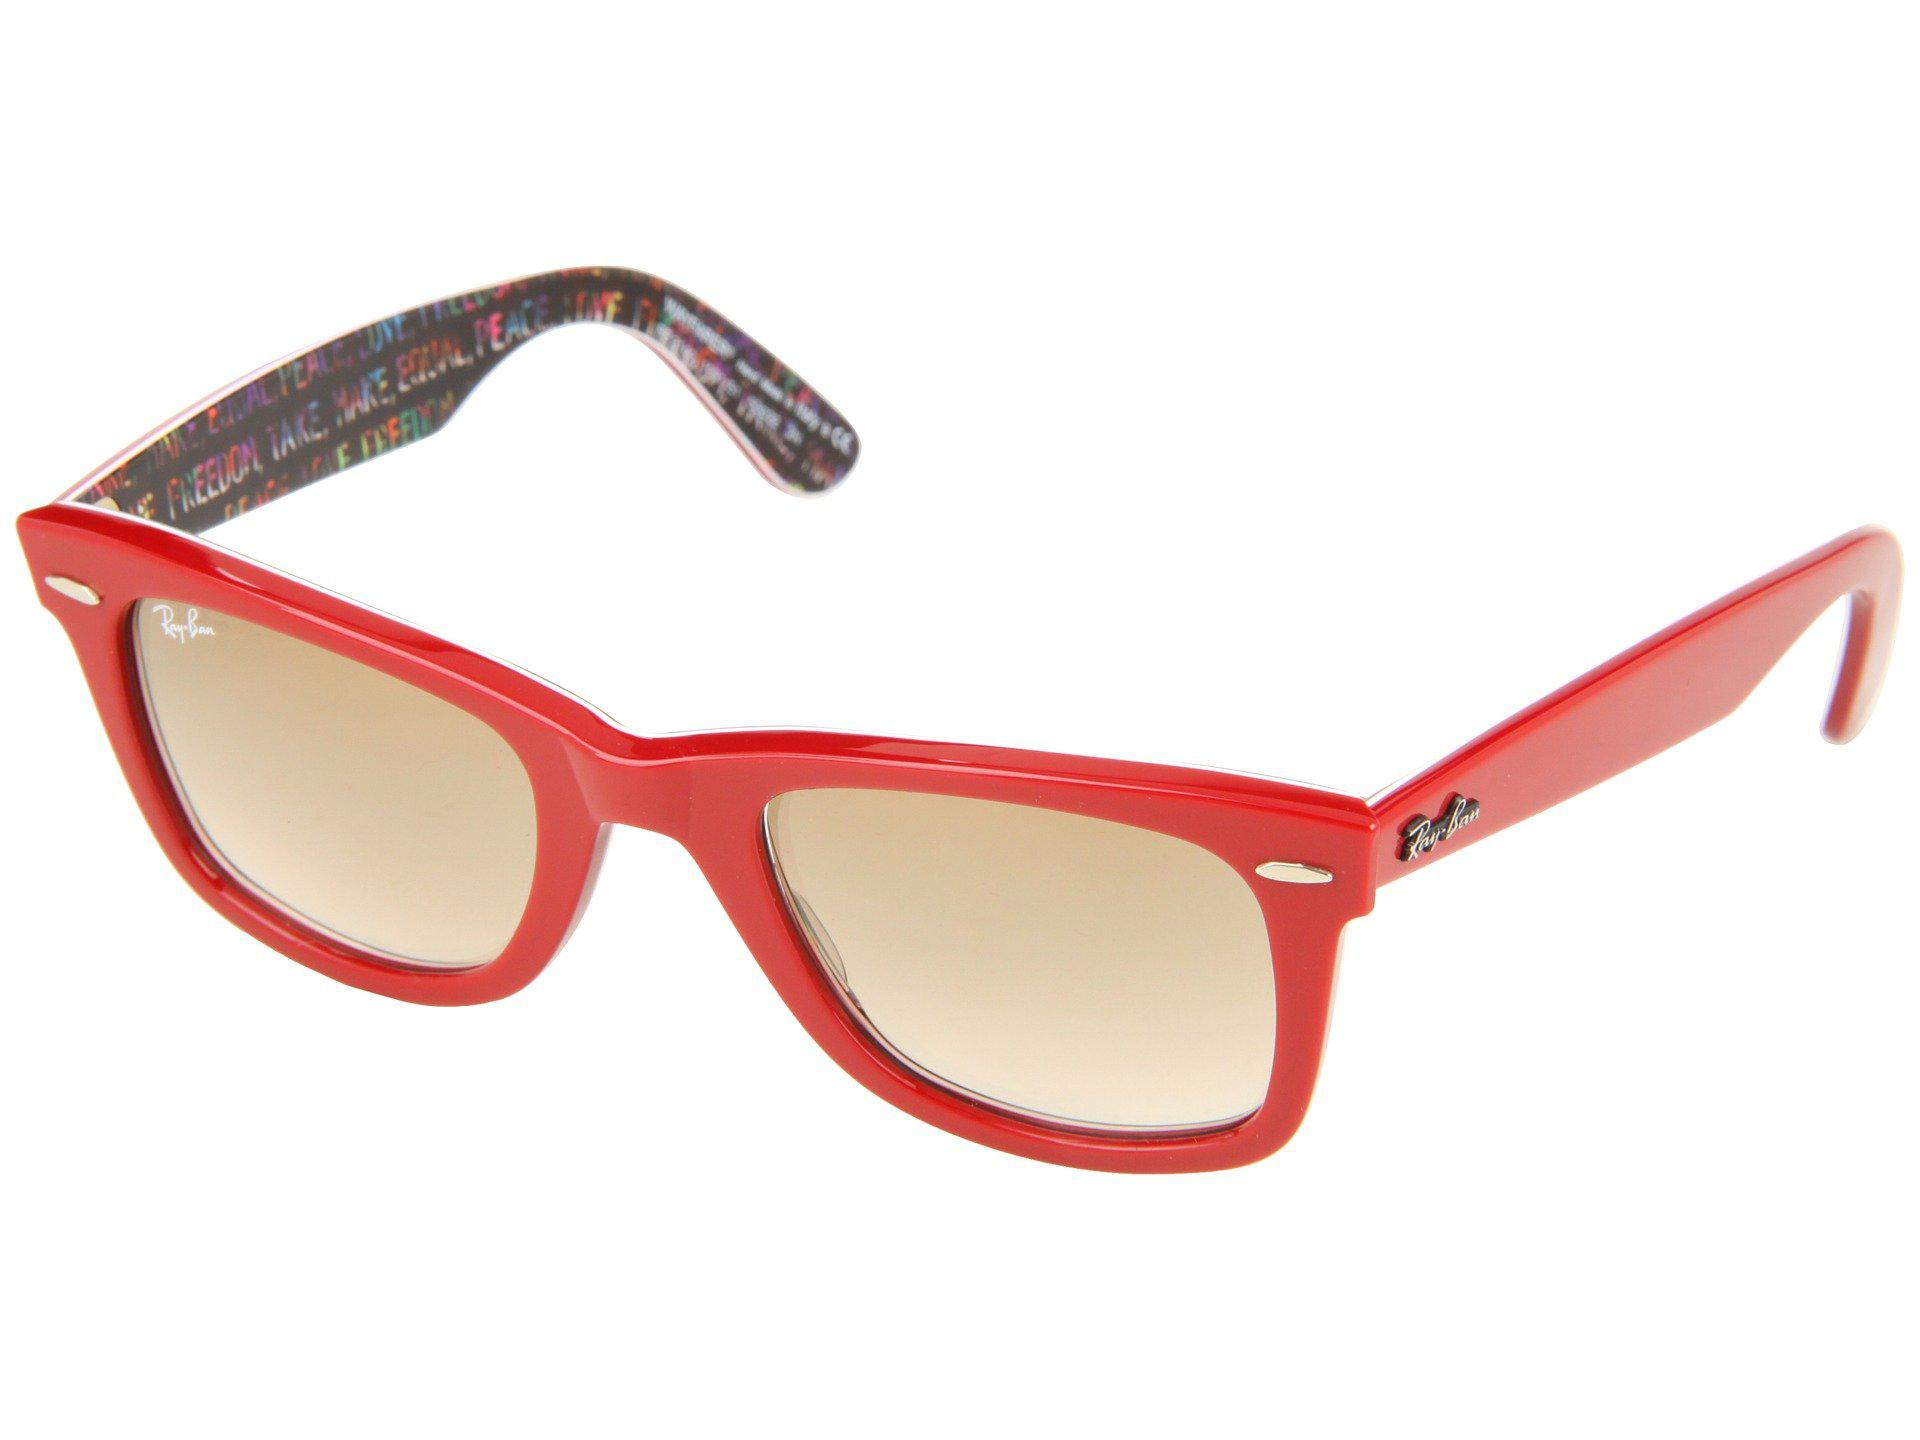 e459d96487 ... new zealand lyst ray ban rb2140 original wayfarer 50 medium in red  ac0c8 5756d